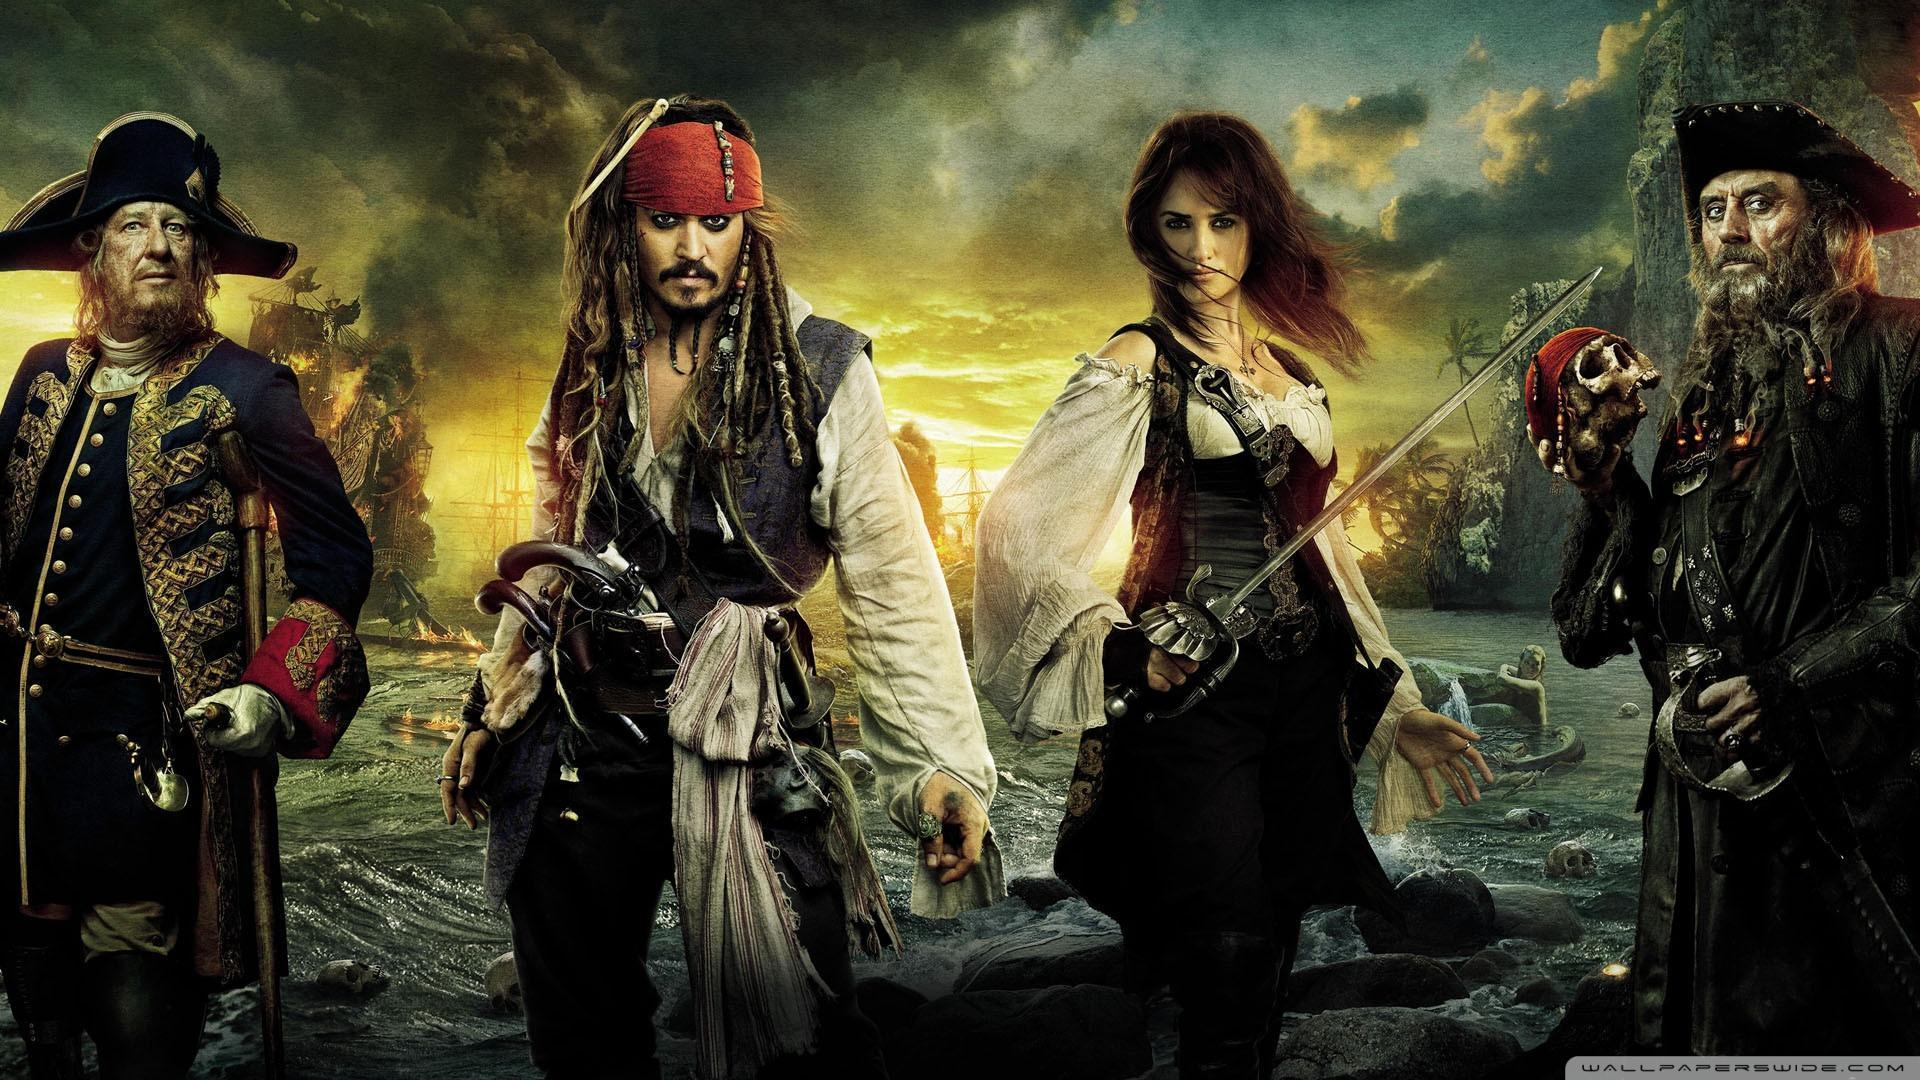 Pirates Of The Caribbean On Stranger Tides 2011 Movie HD desktop ...